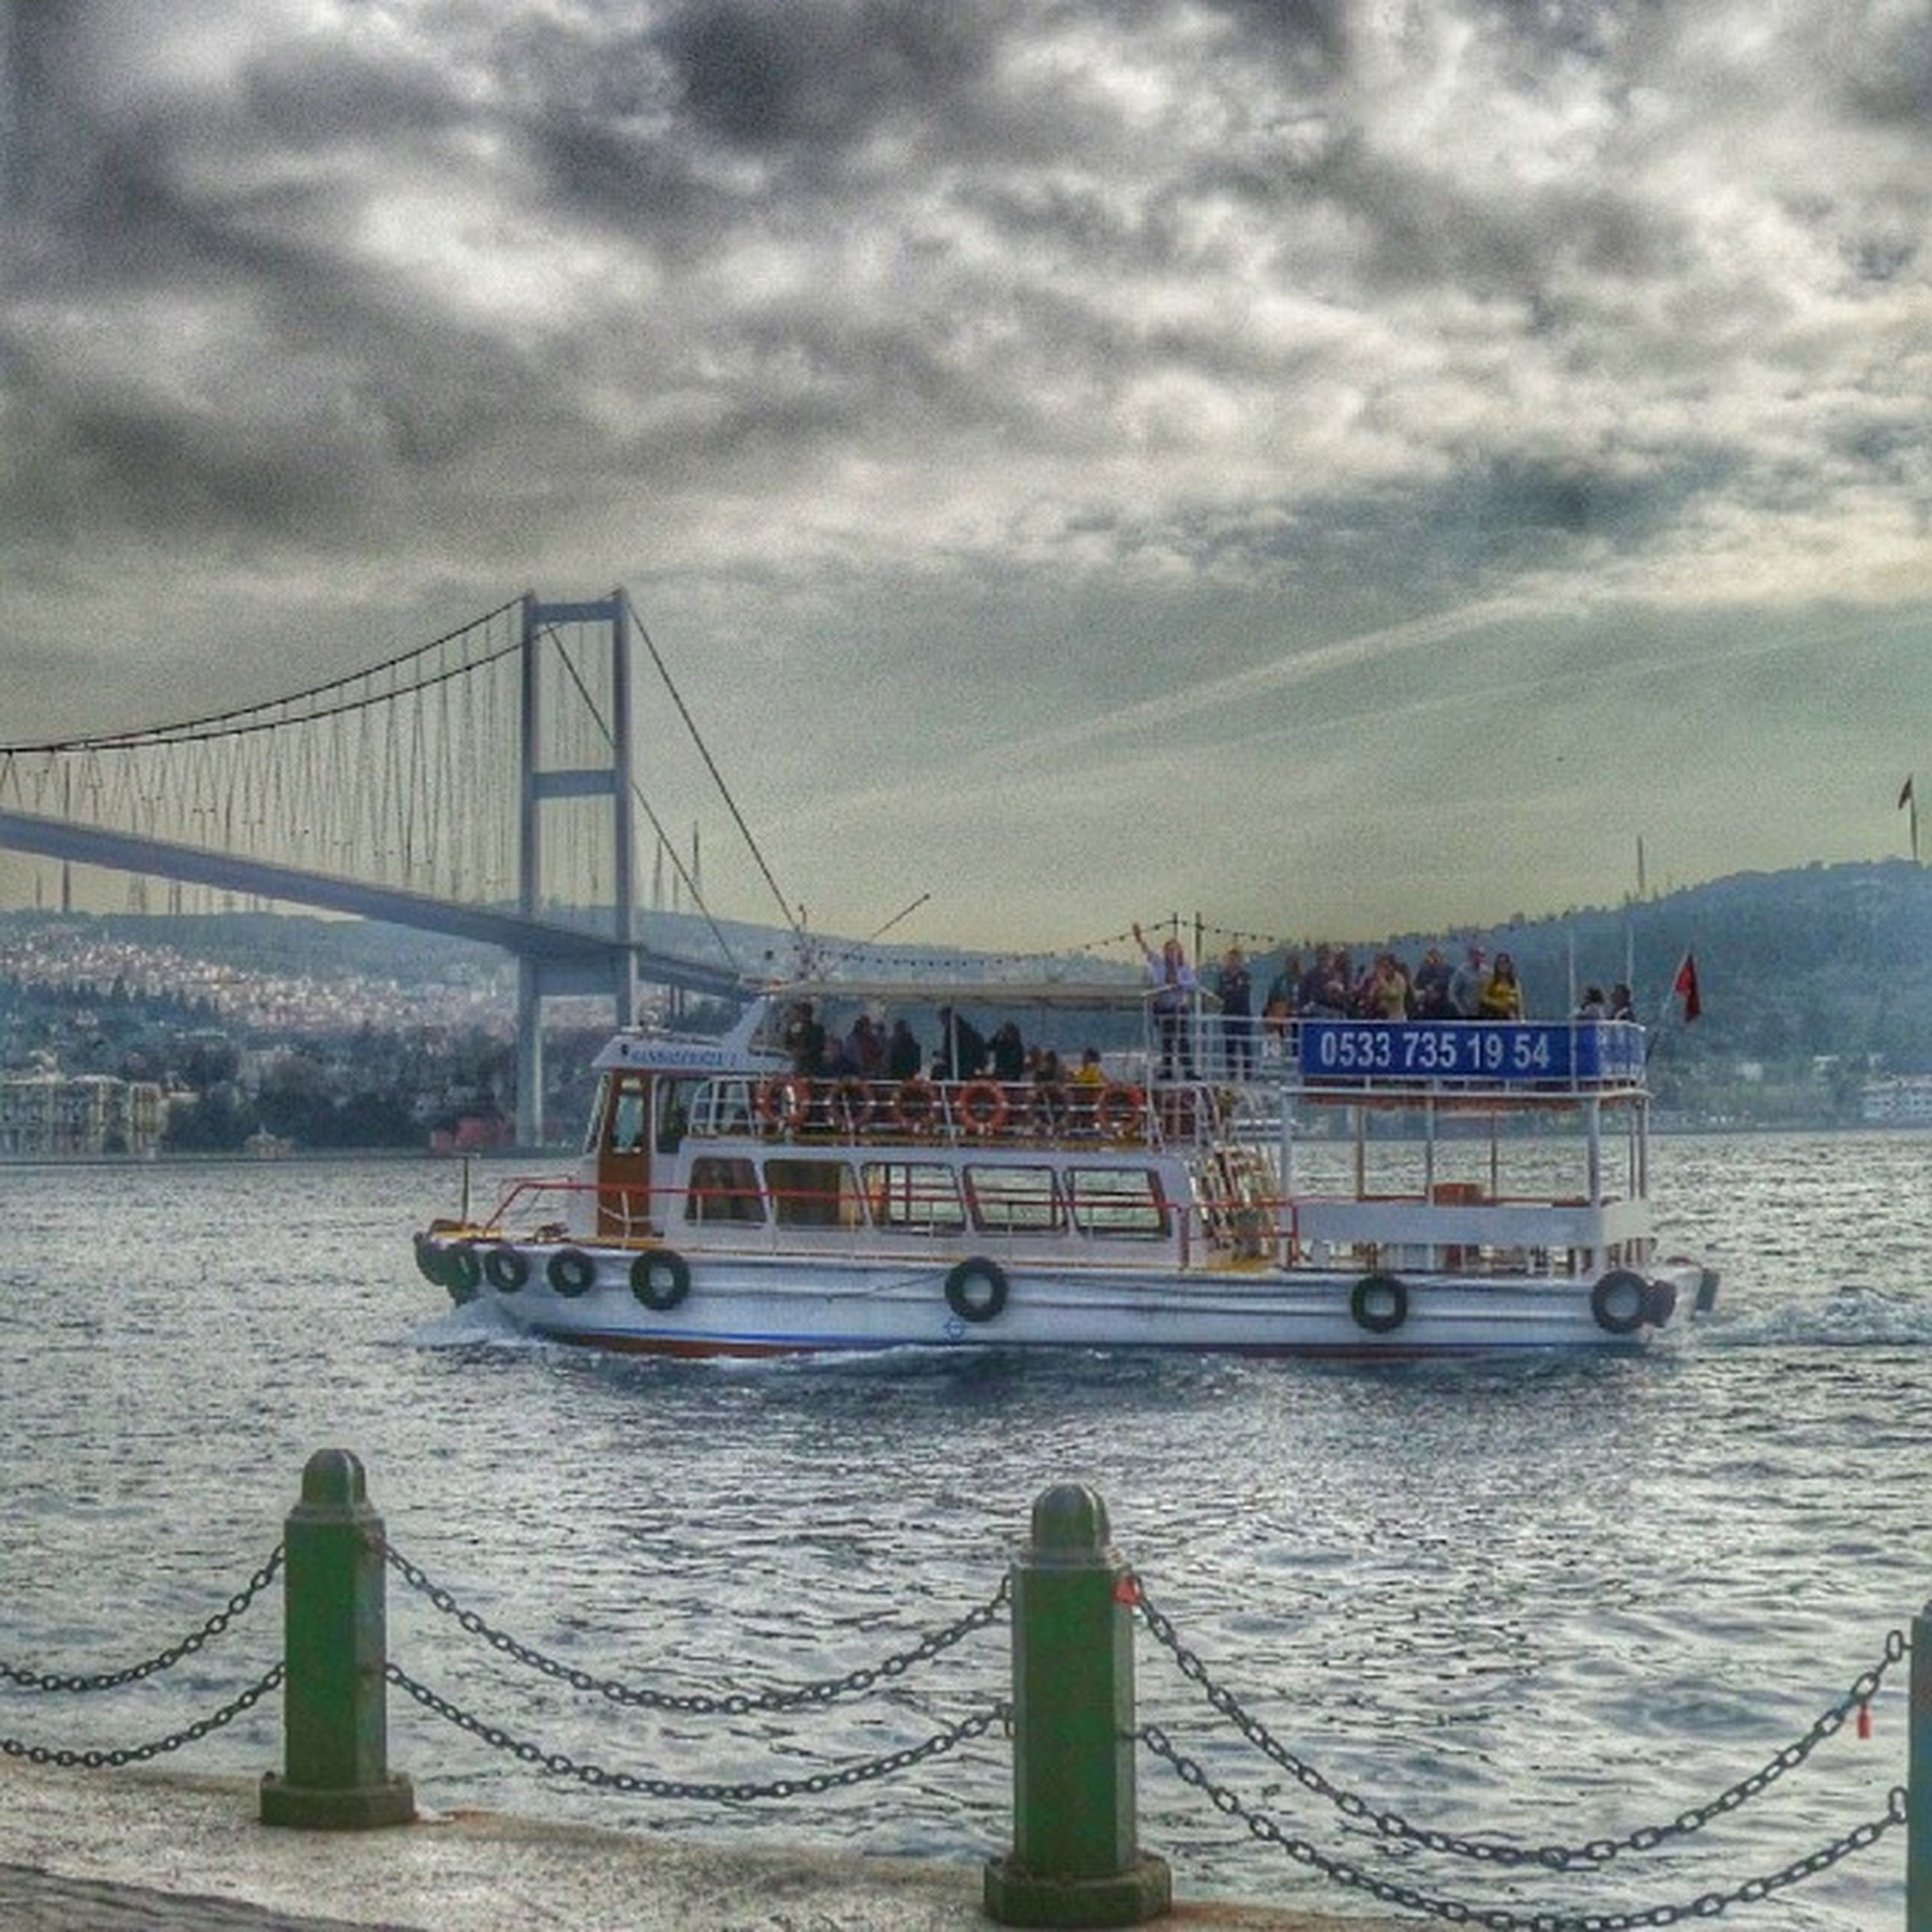 nautical vessel, transportation, sky, water, mode of transport, sea, cloud - sky, boat, cloudy, moored, cloud, harbor, nature, pier, waterfront, travel, outdoors, mast, overcast, built structure